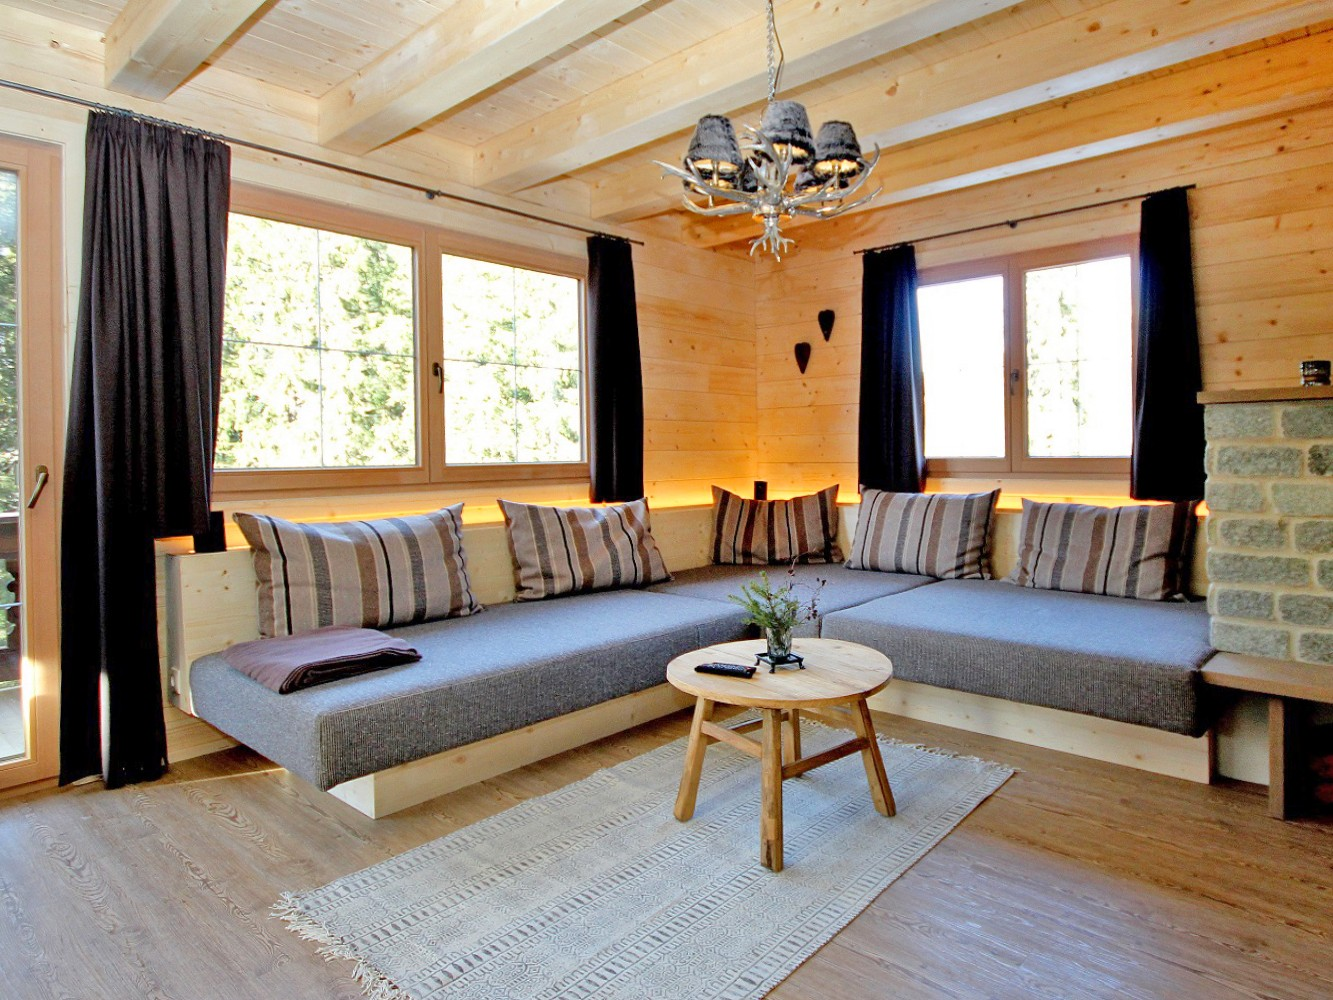 2Chalet Couchbearb